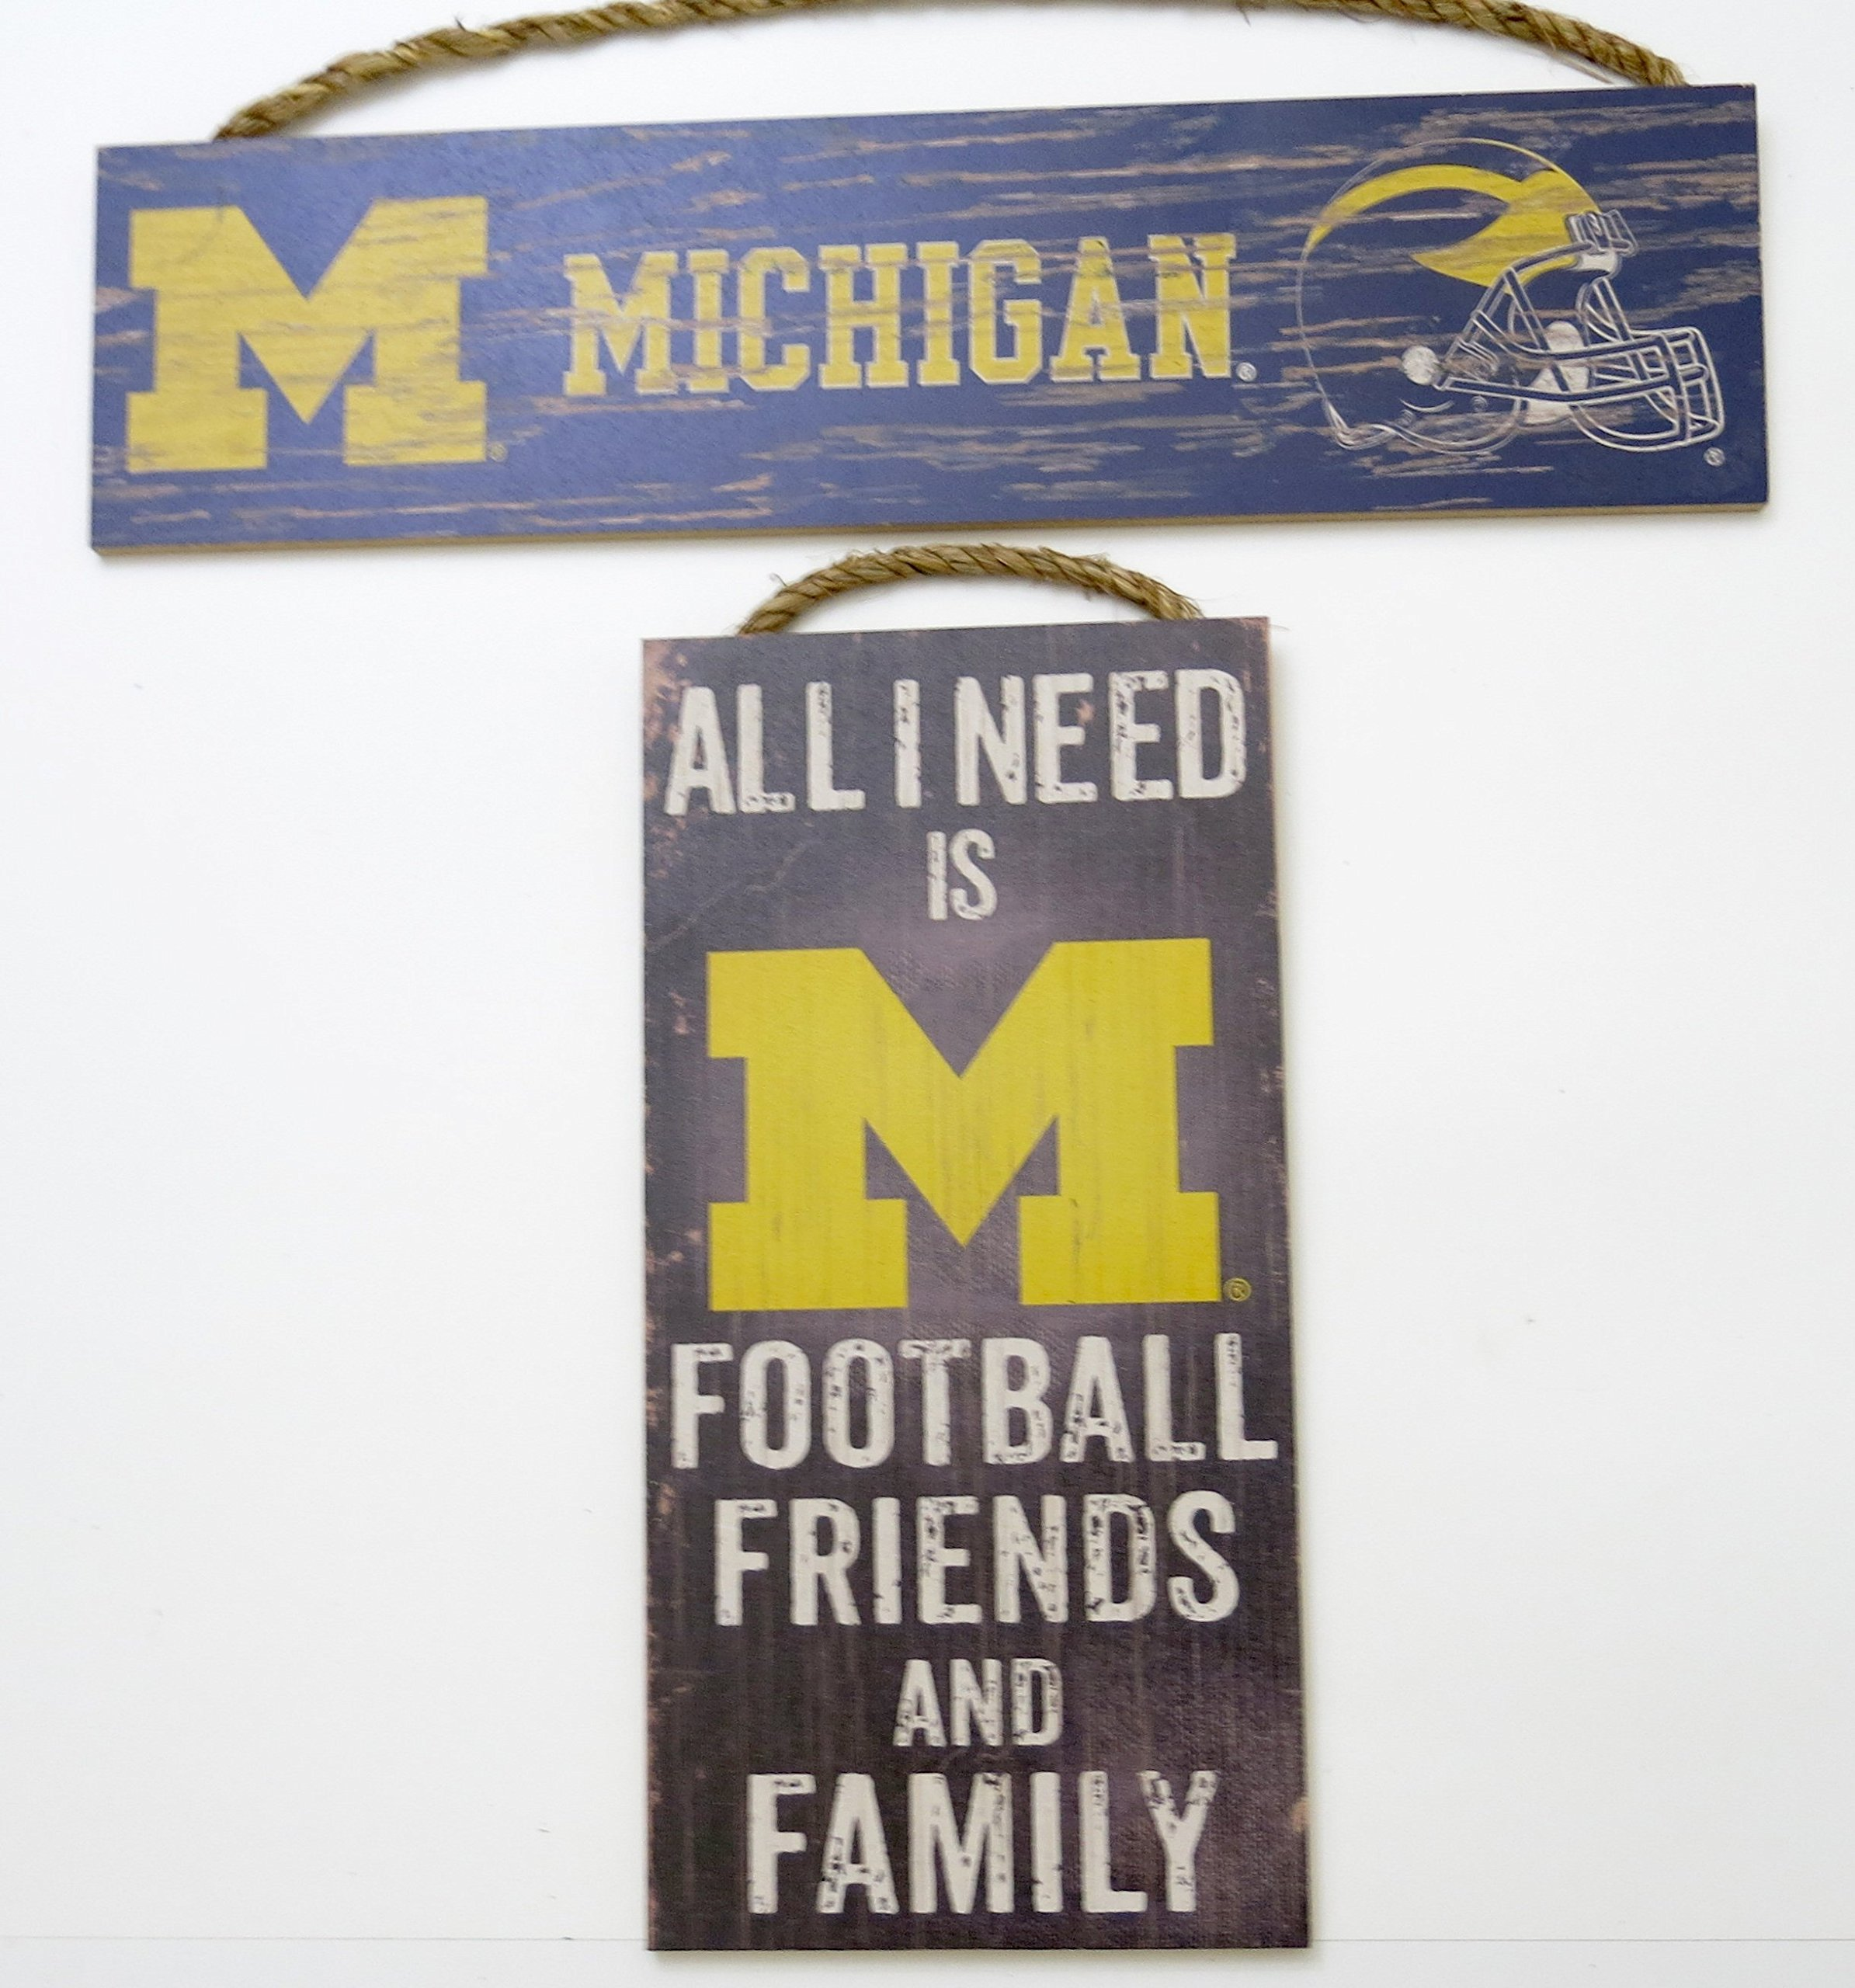 University of Michigan, wood sign wall decor,'' all need is football friends and family'', and long sign, 2 pieces set.